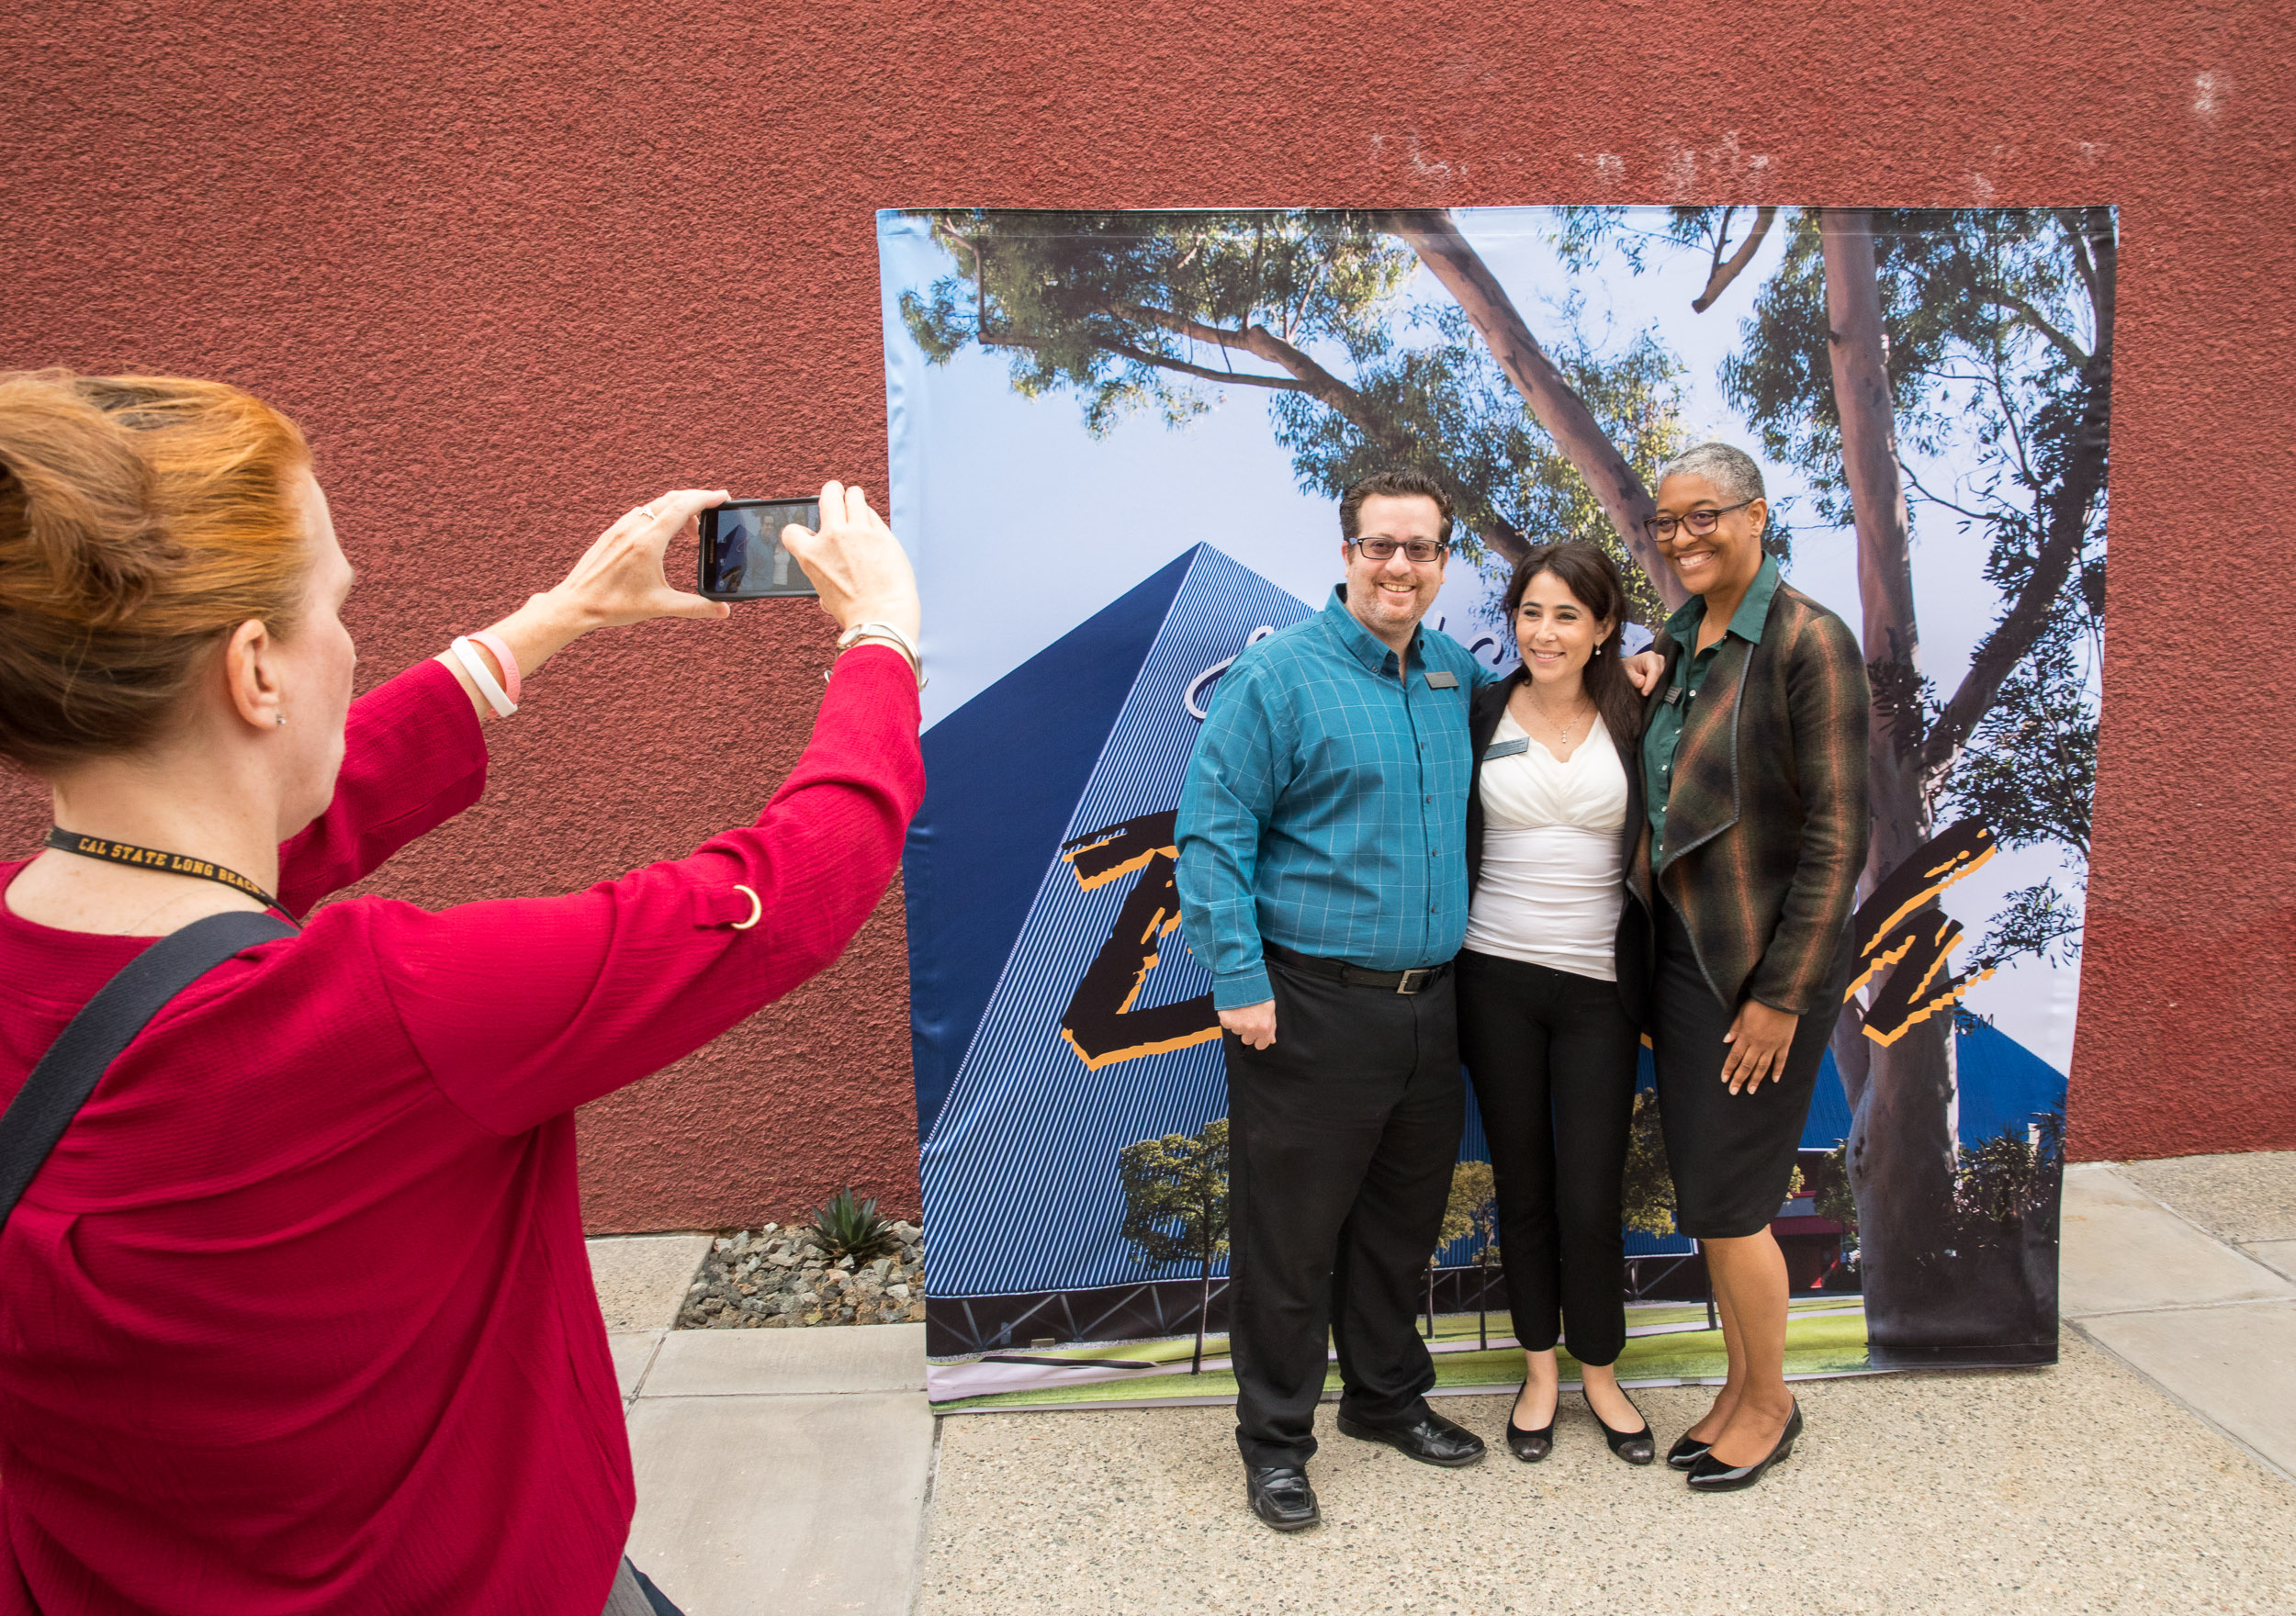 Guests take pictures in front of Pyramid banner